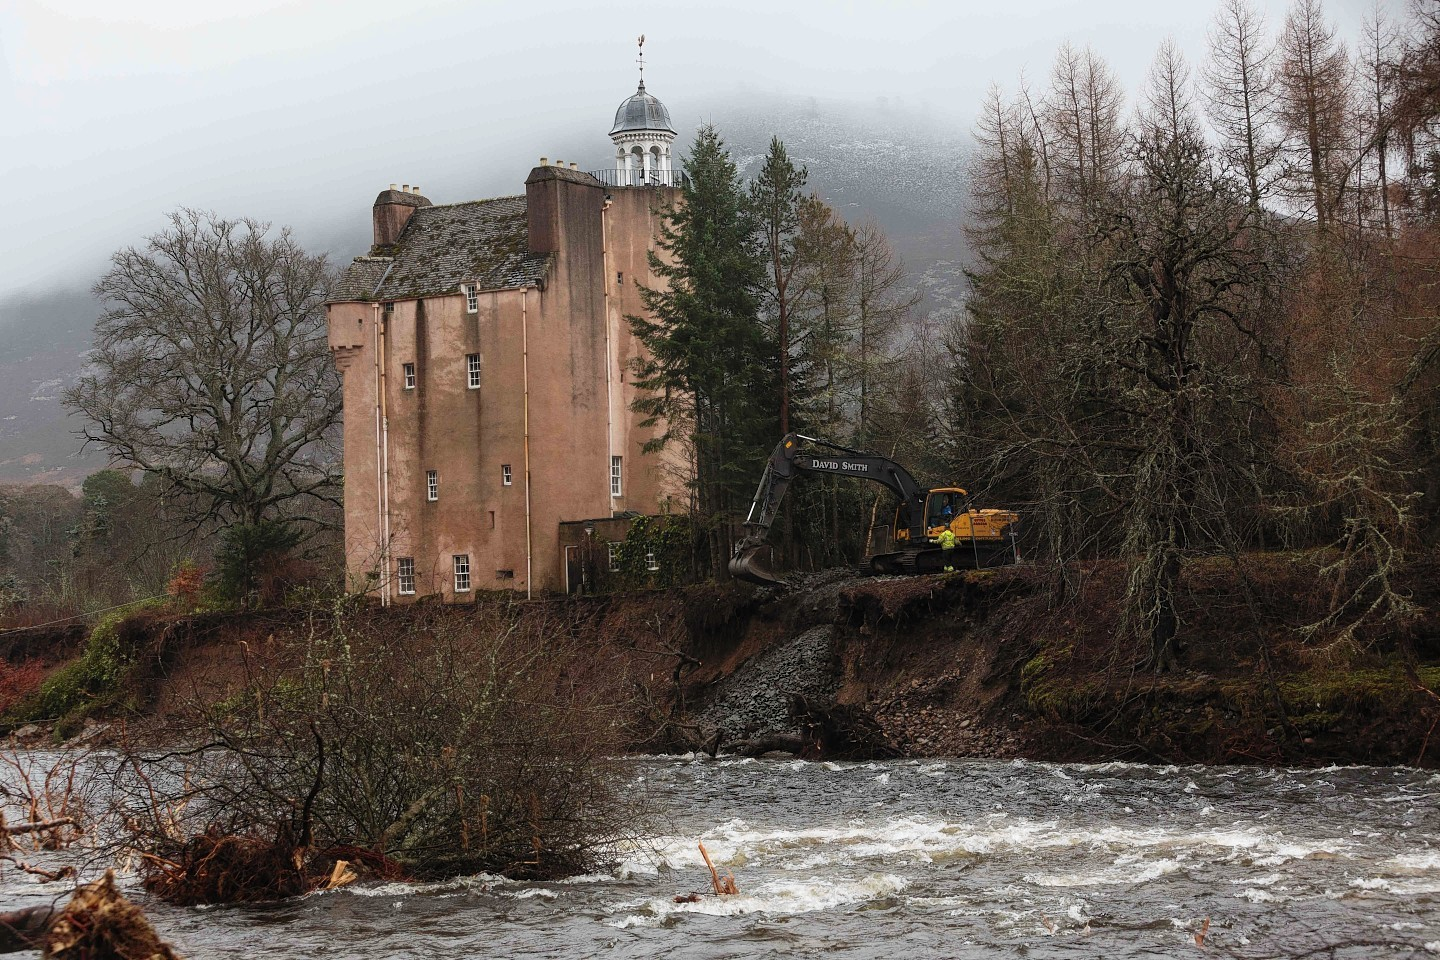 Abergeldie Castle sitting dangerously close to the river earlier this week